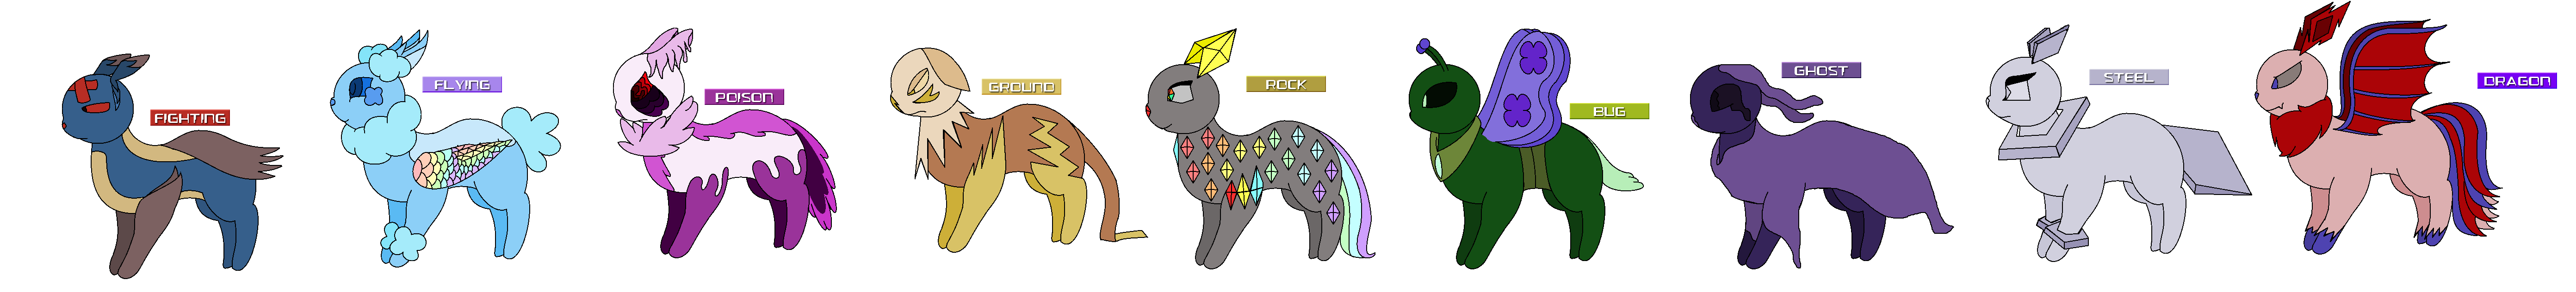 These are my versions of eeveelutions unused typings. Sorry if some of them look like rip offs or copies of someone else's. I did my best even thought I'm not that creative. There will be close ups with their names.